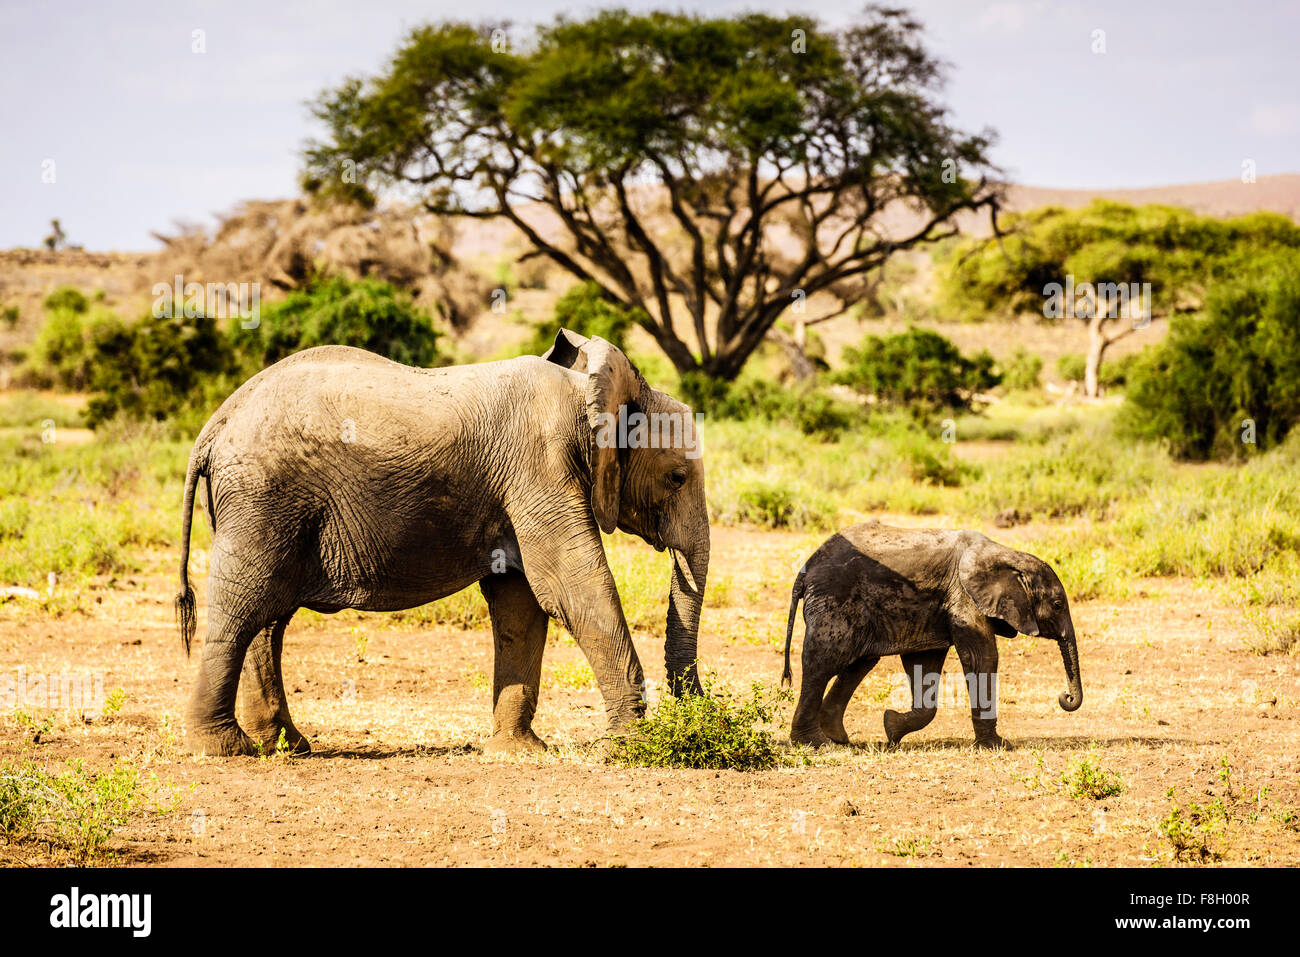 Elephant and calf walking in sand - Stock Image